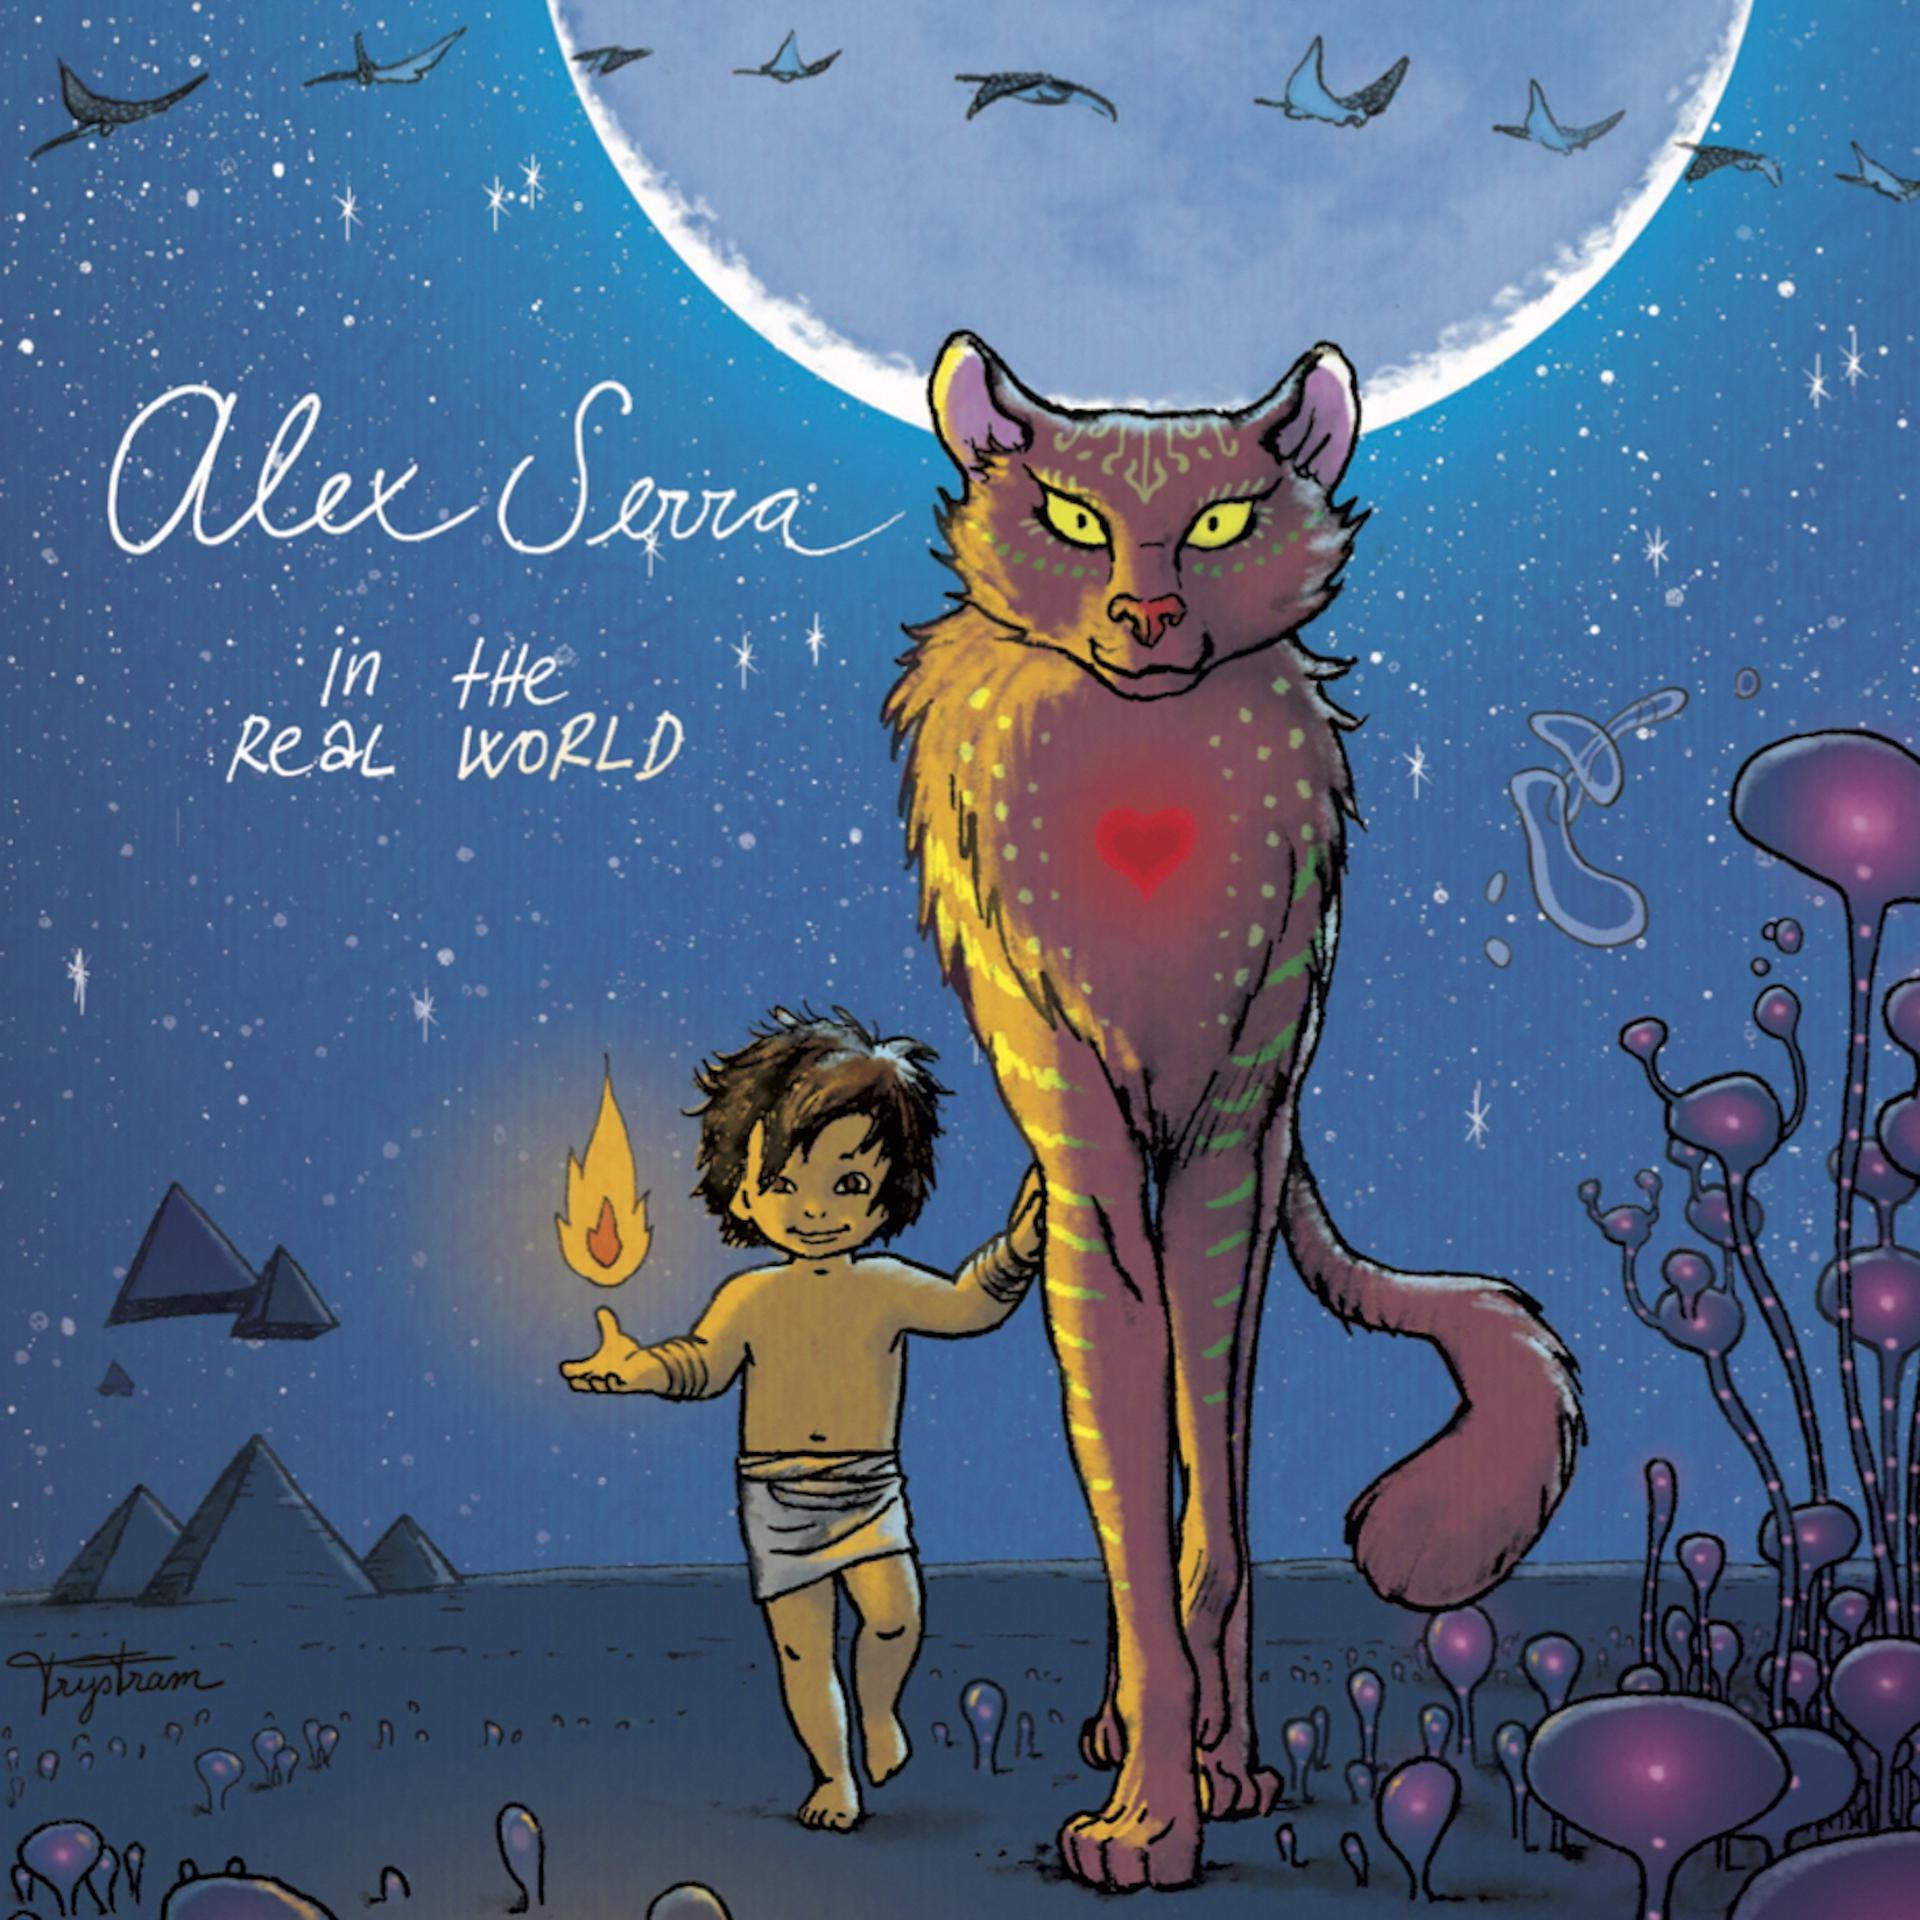 Alex Serra publica su álbum debut 'In the real world'